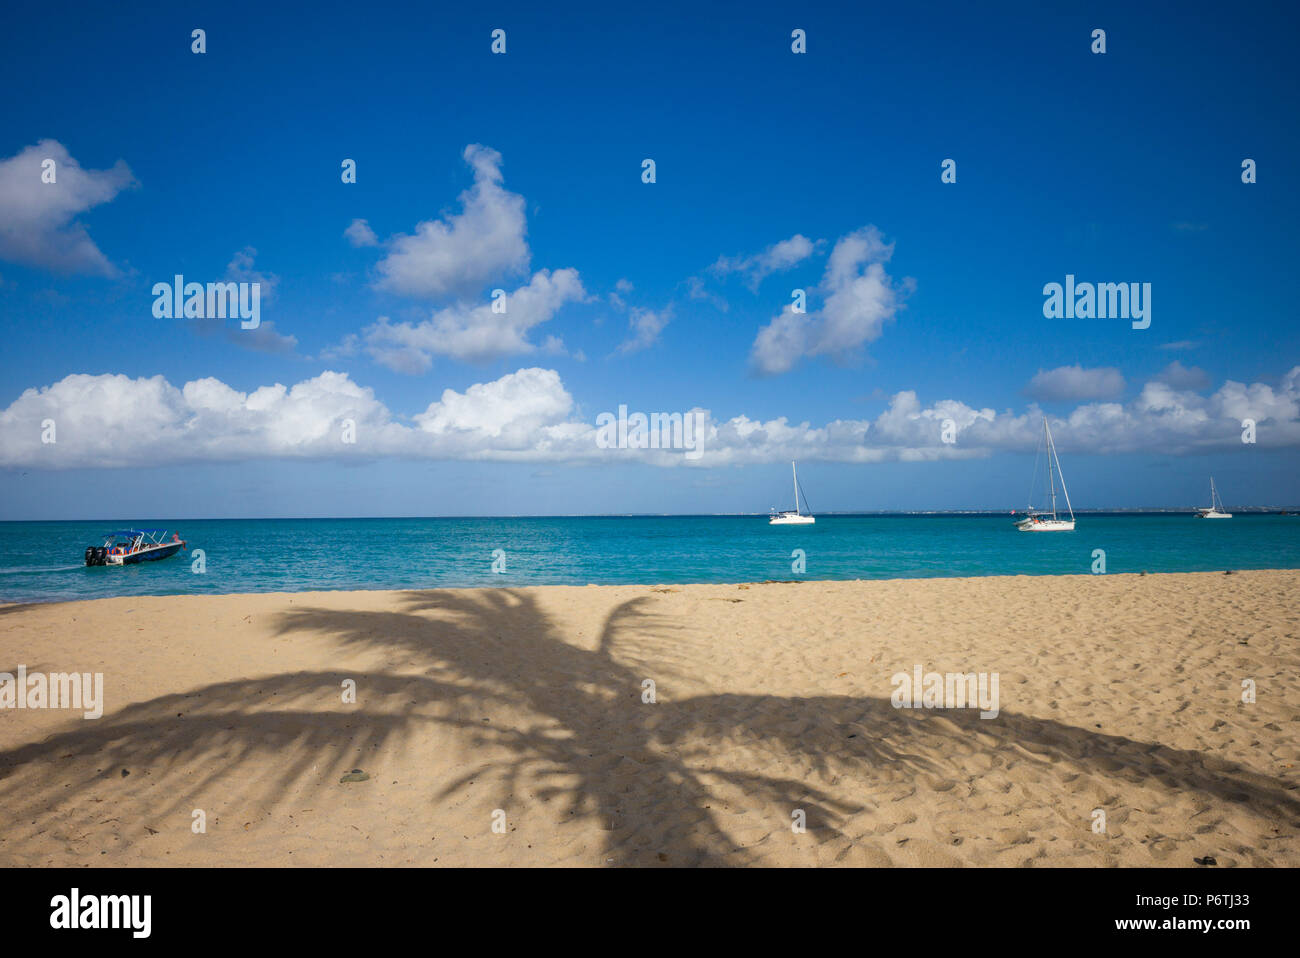 French West Indies, St-Martin, Friars Bay, beach - Stock Image